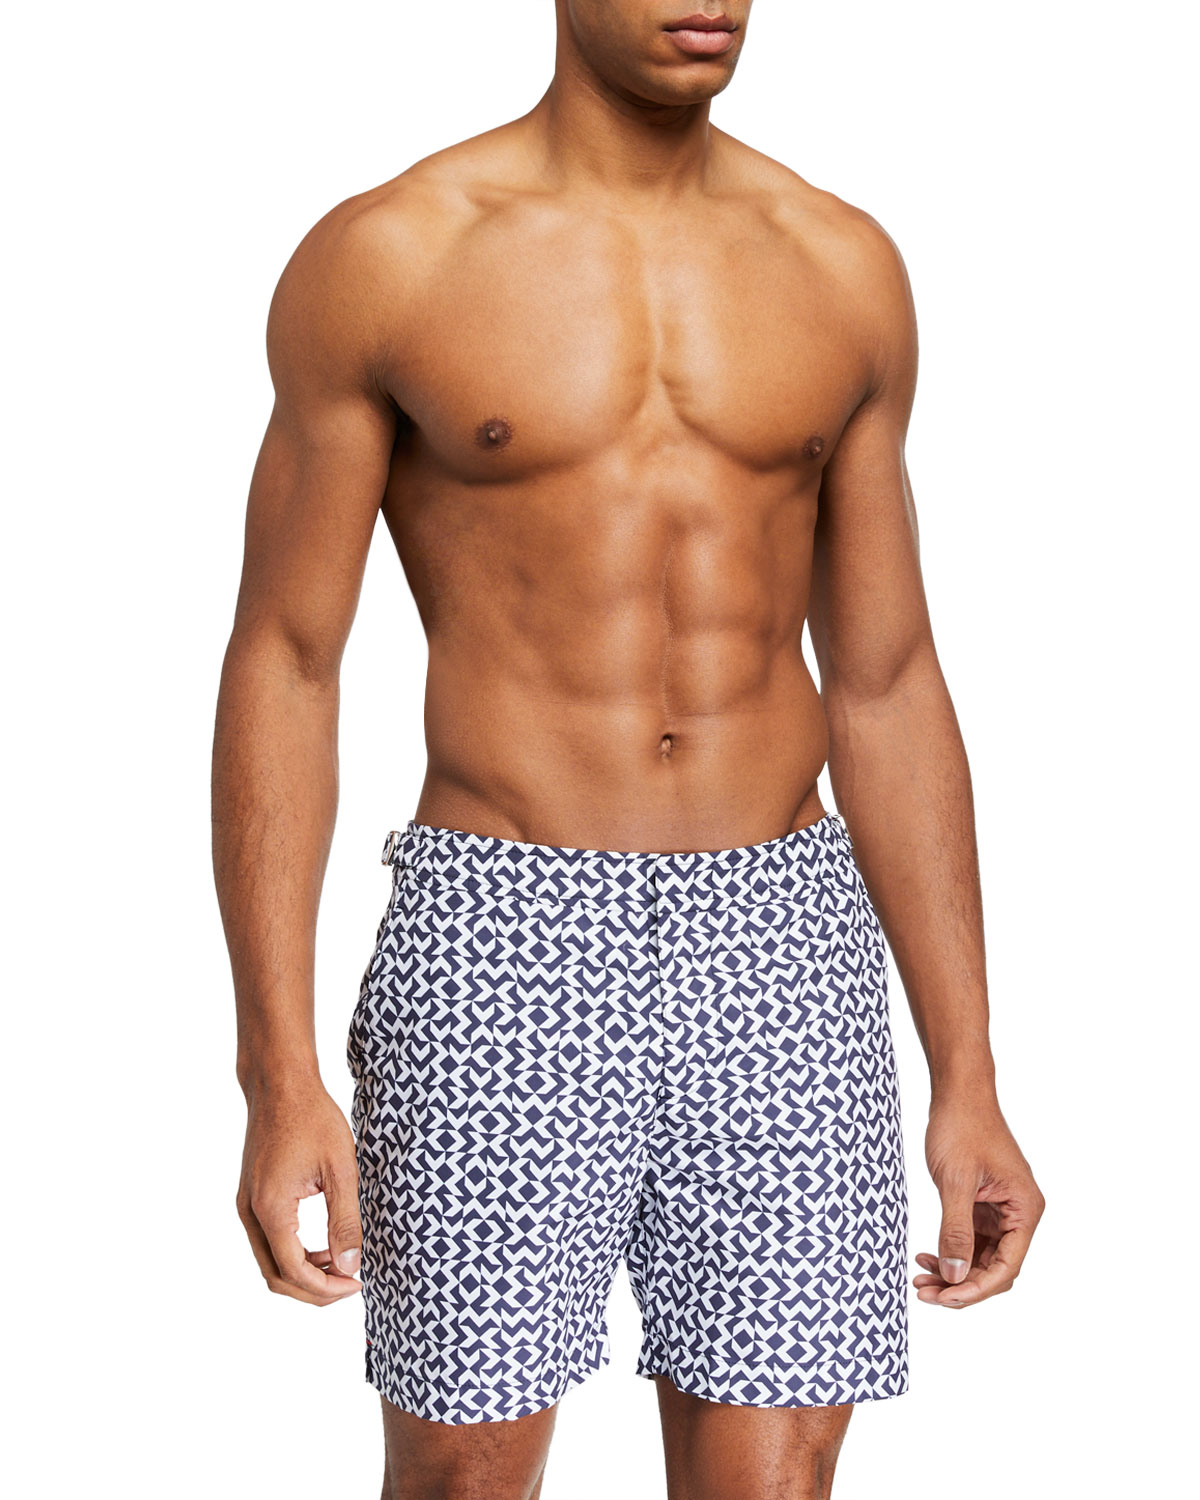 Orlebar Brown Pants MEN'S BULLDOG FRECCE GRAPHIC SWIM TRUNKS